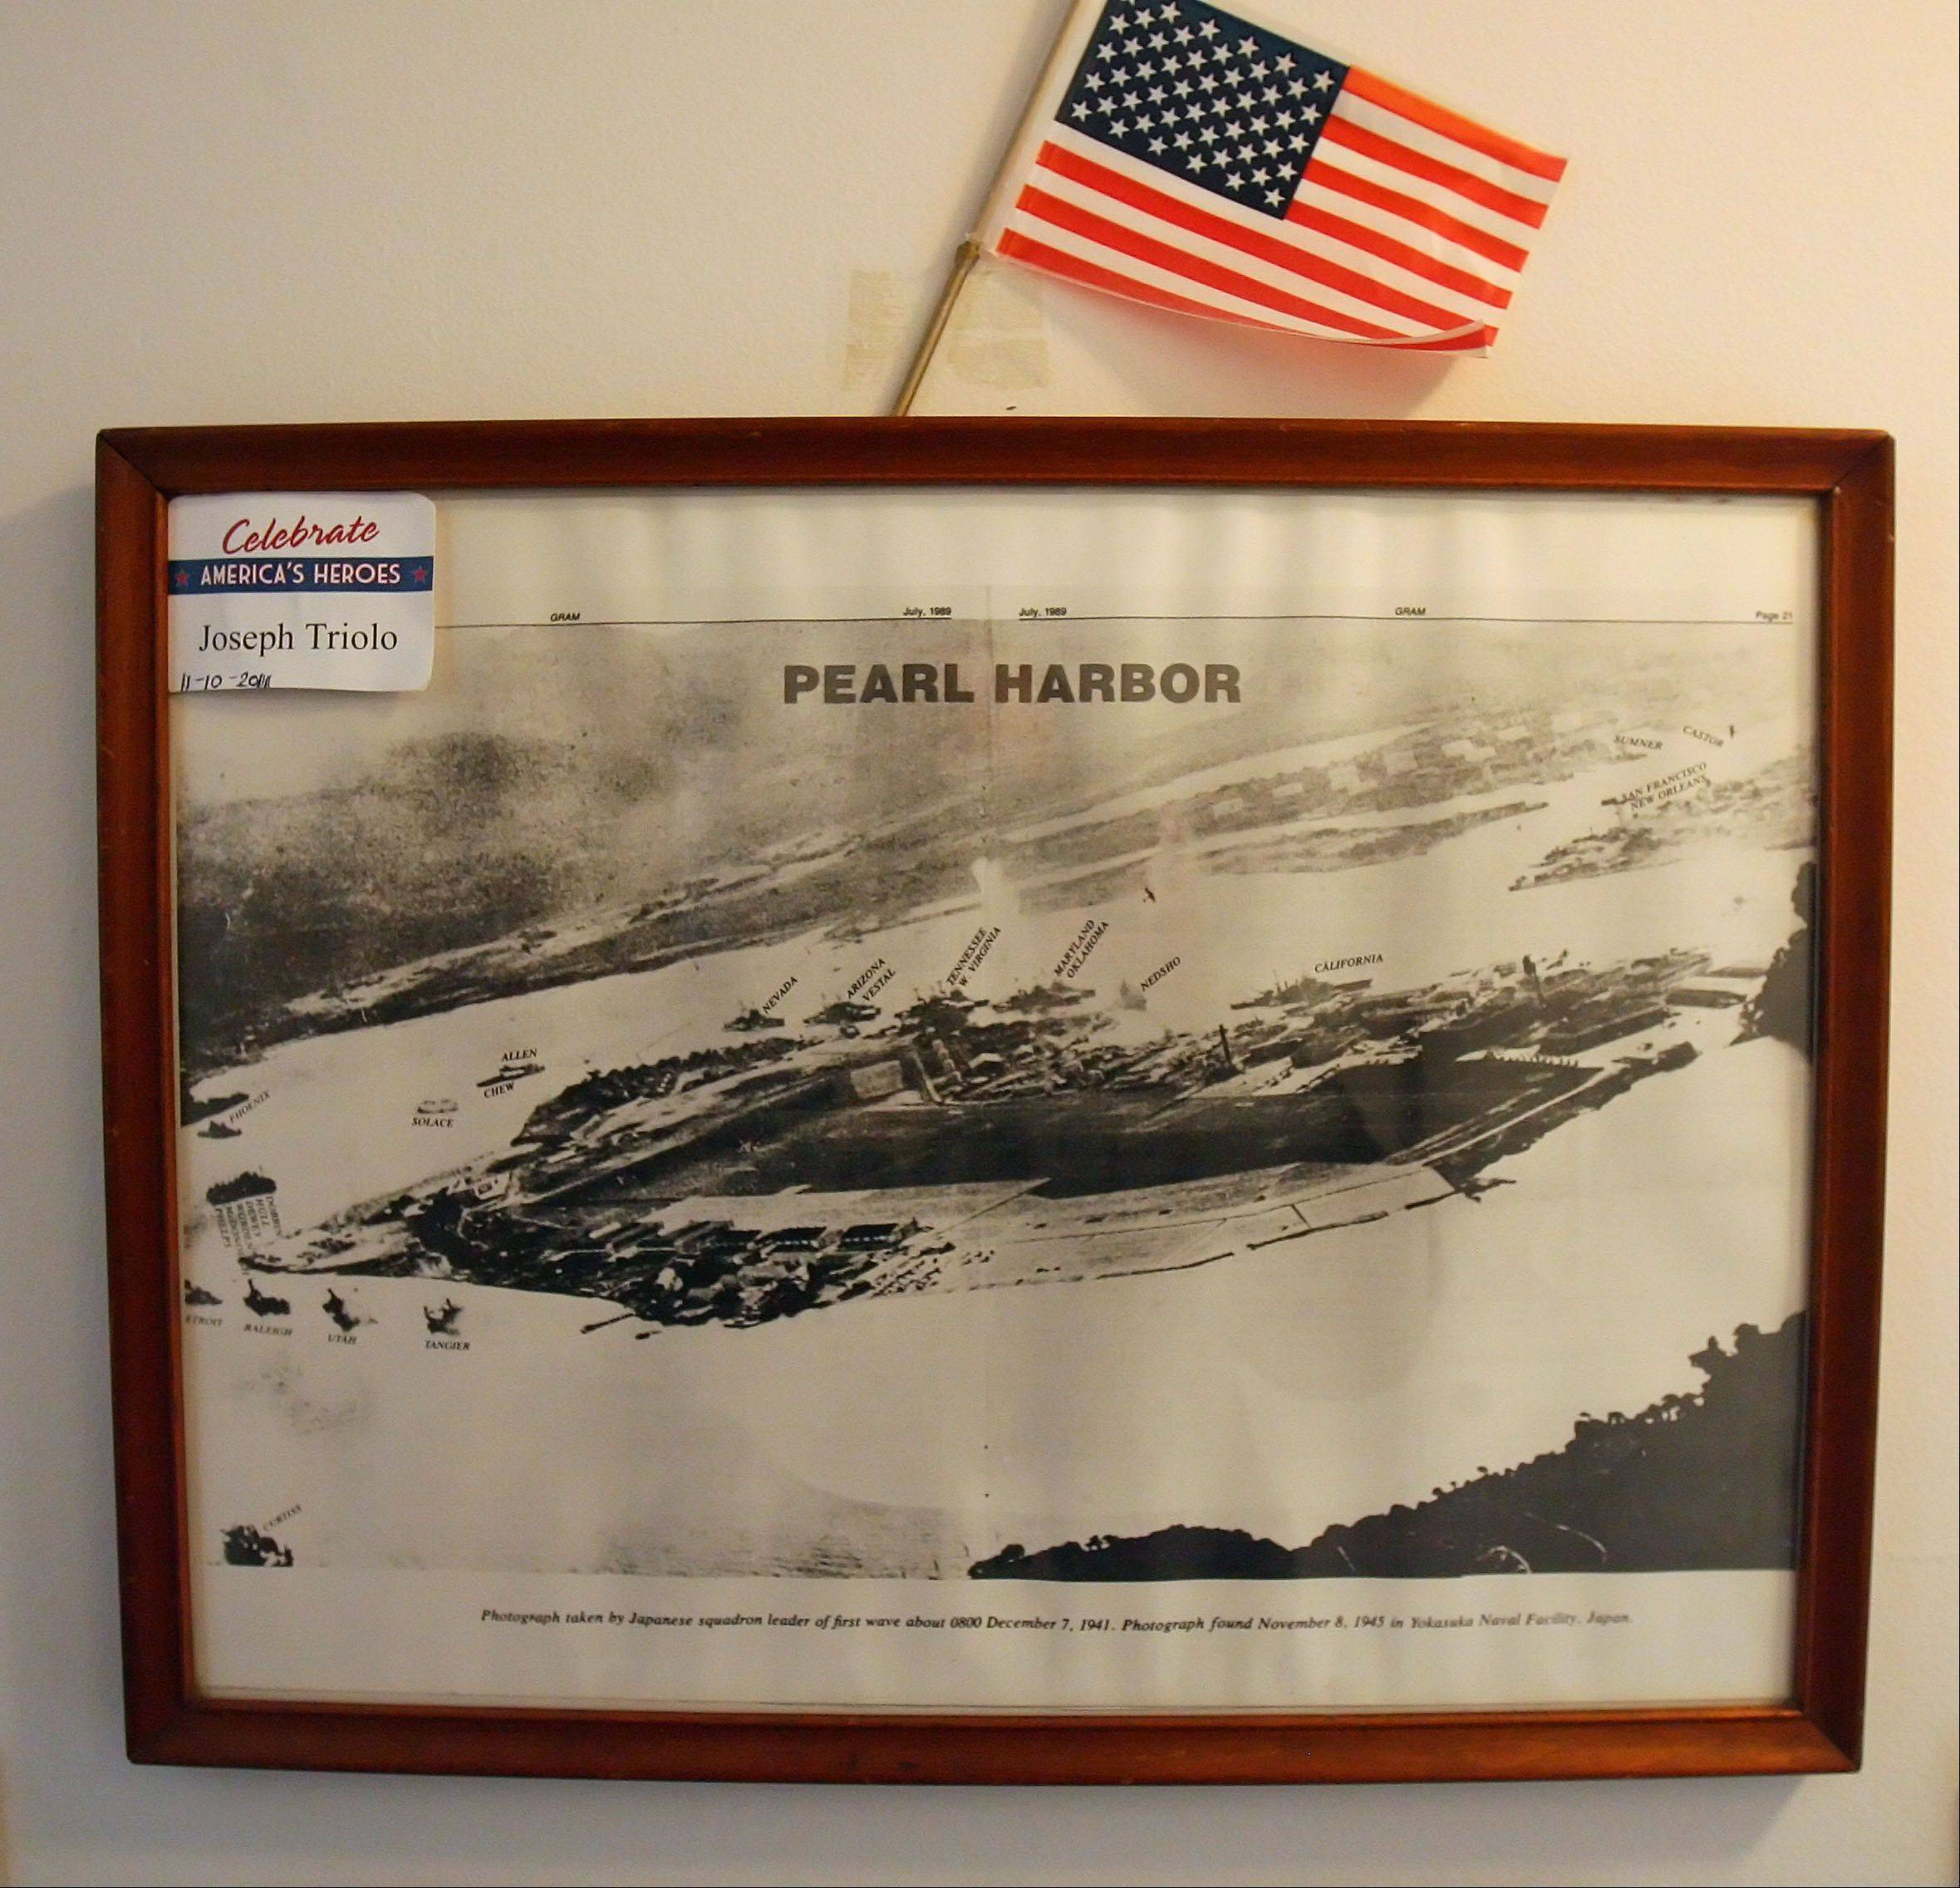 This replica photo of Pearl Harbor shot by a Japanese pilot hangs on the wall of 92-year-old Pearl Harbor survivor Joe Triolo of Waukegan.